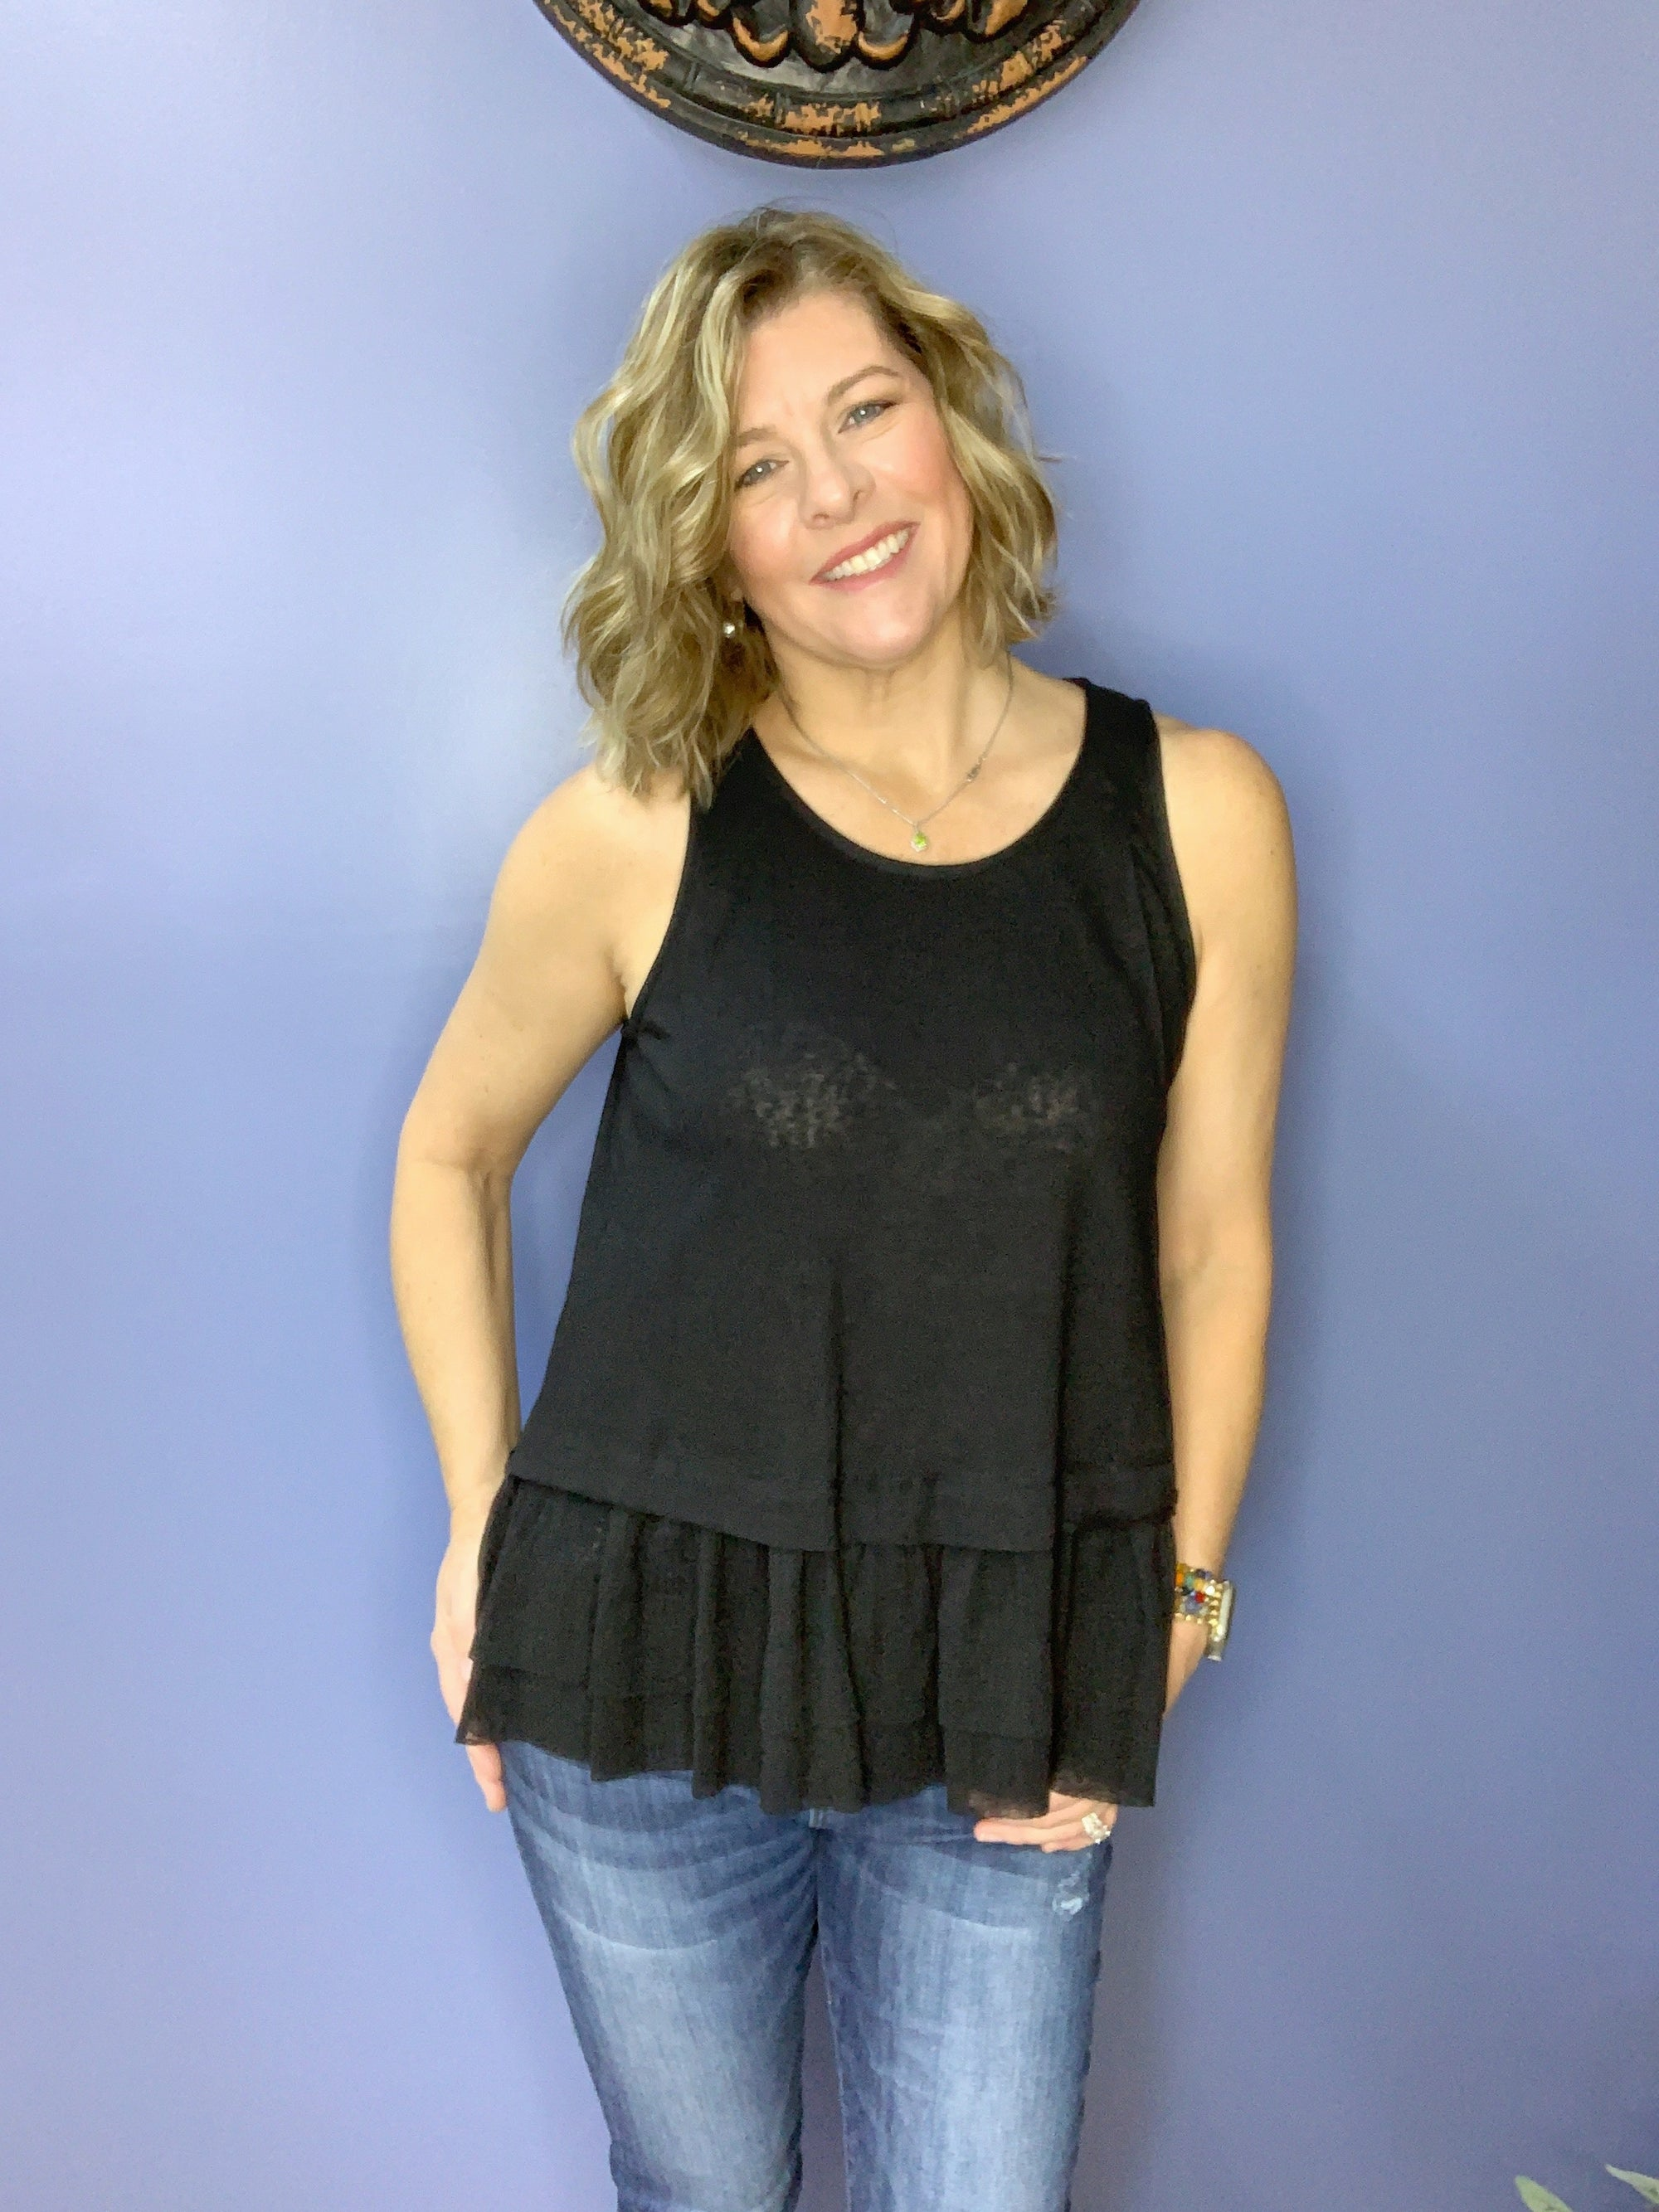 True Love - Ruffled Tank Top / Black (XL)